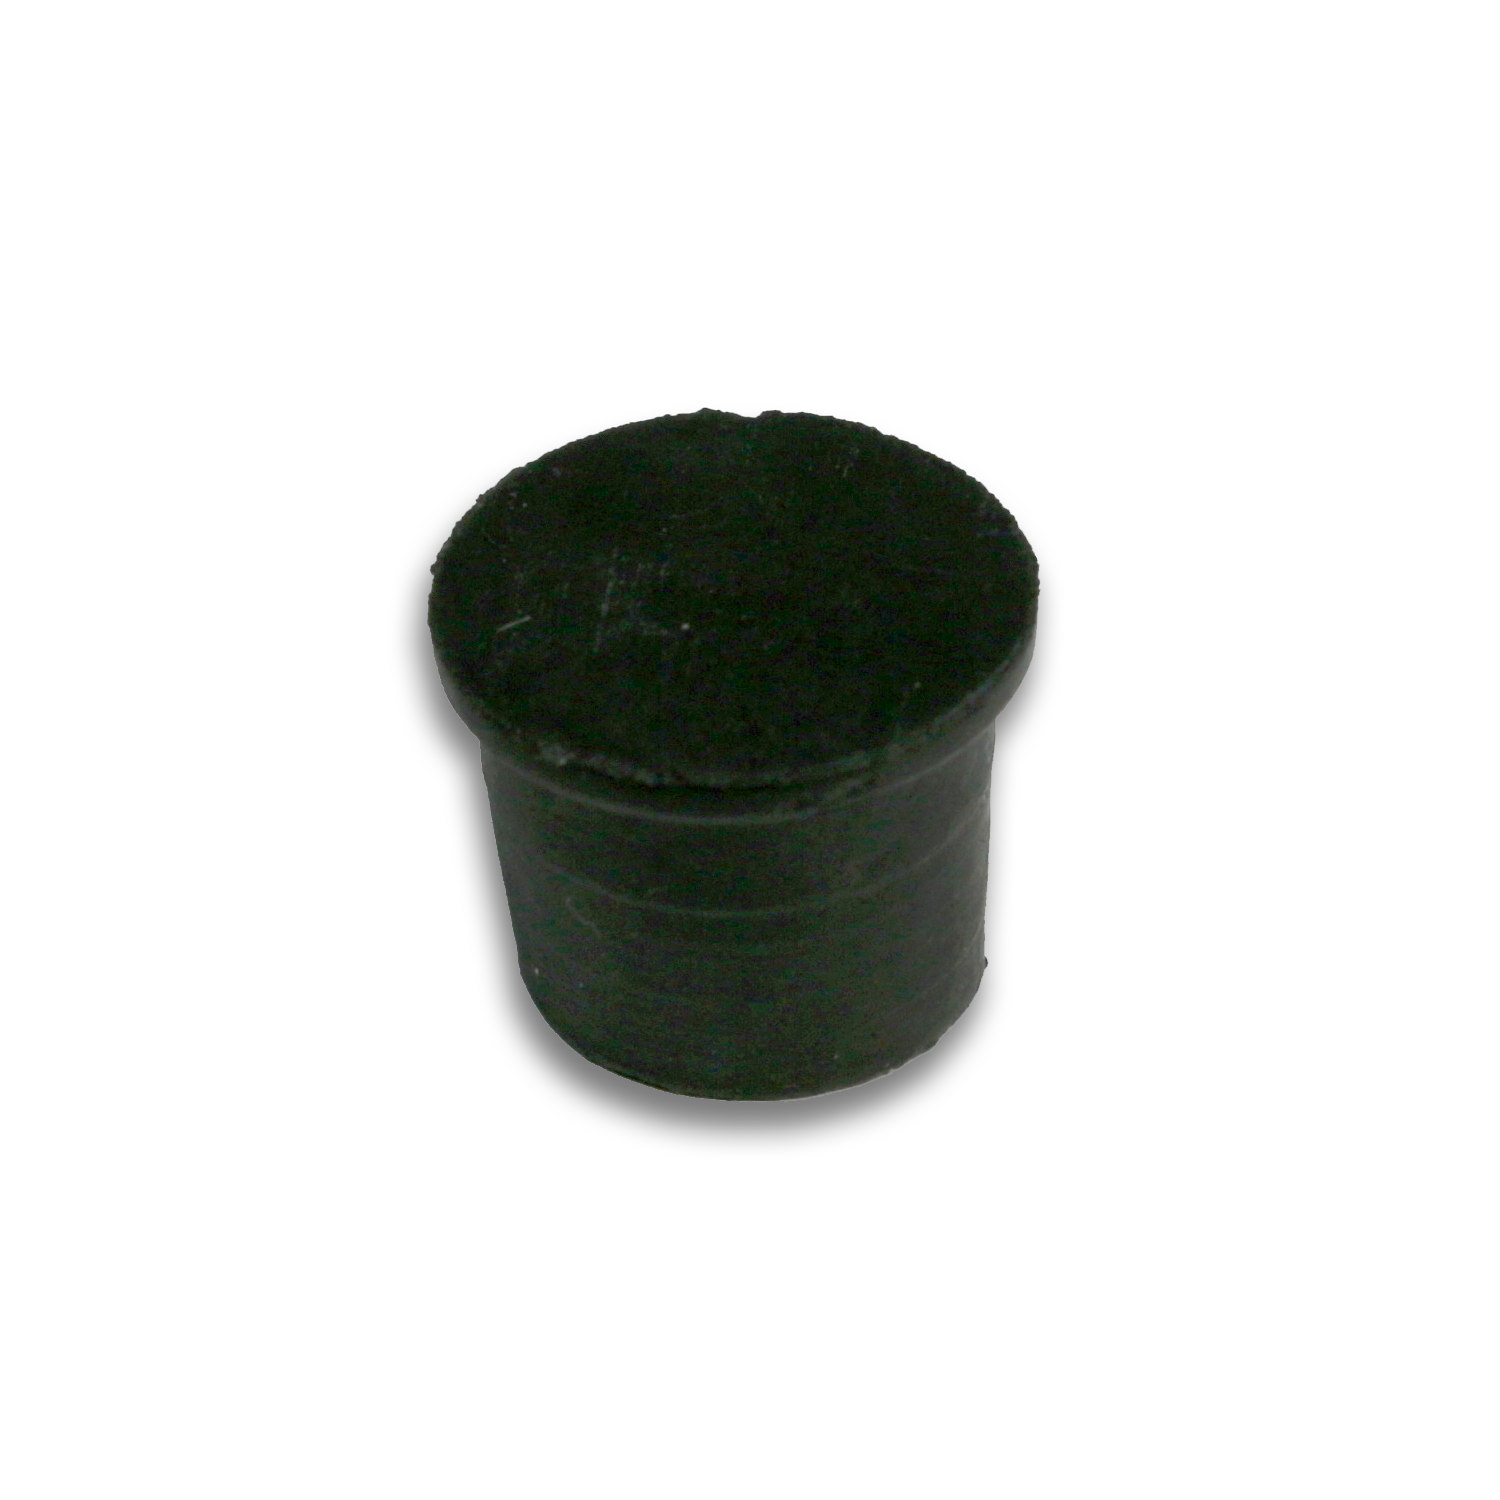 "1/2"" Entry Boot Cushion Plug, bag of 10"